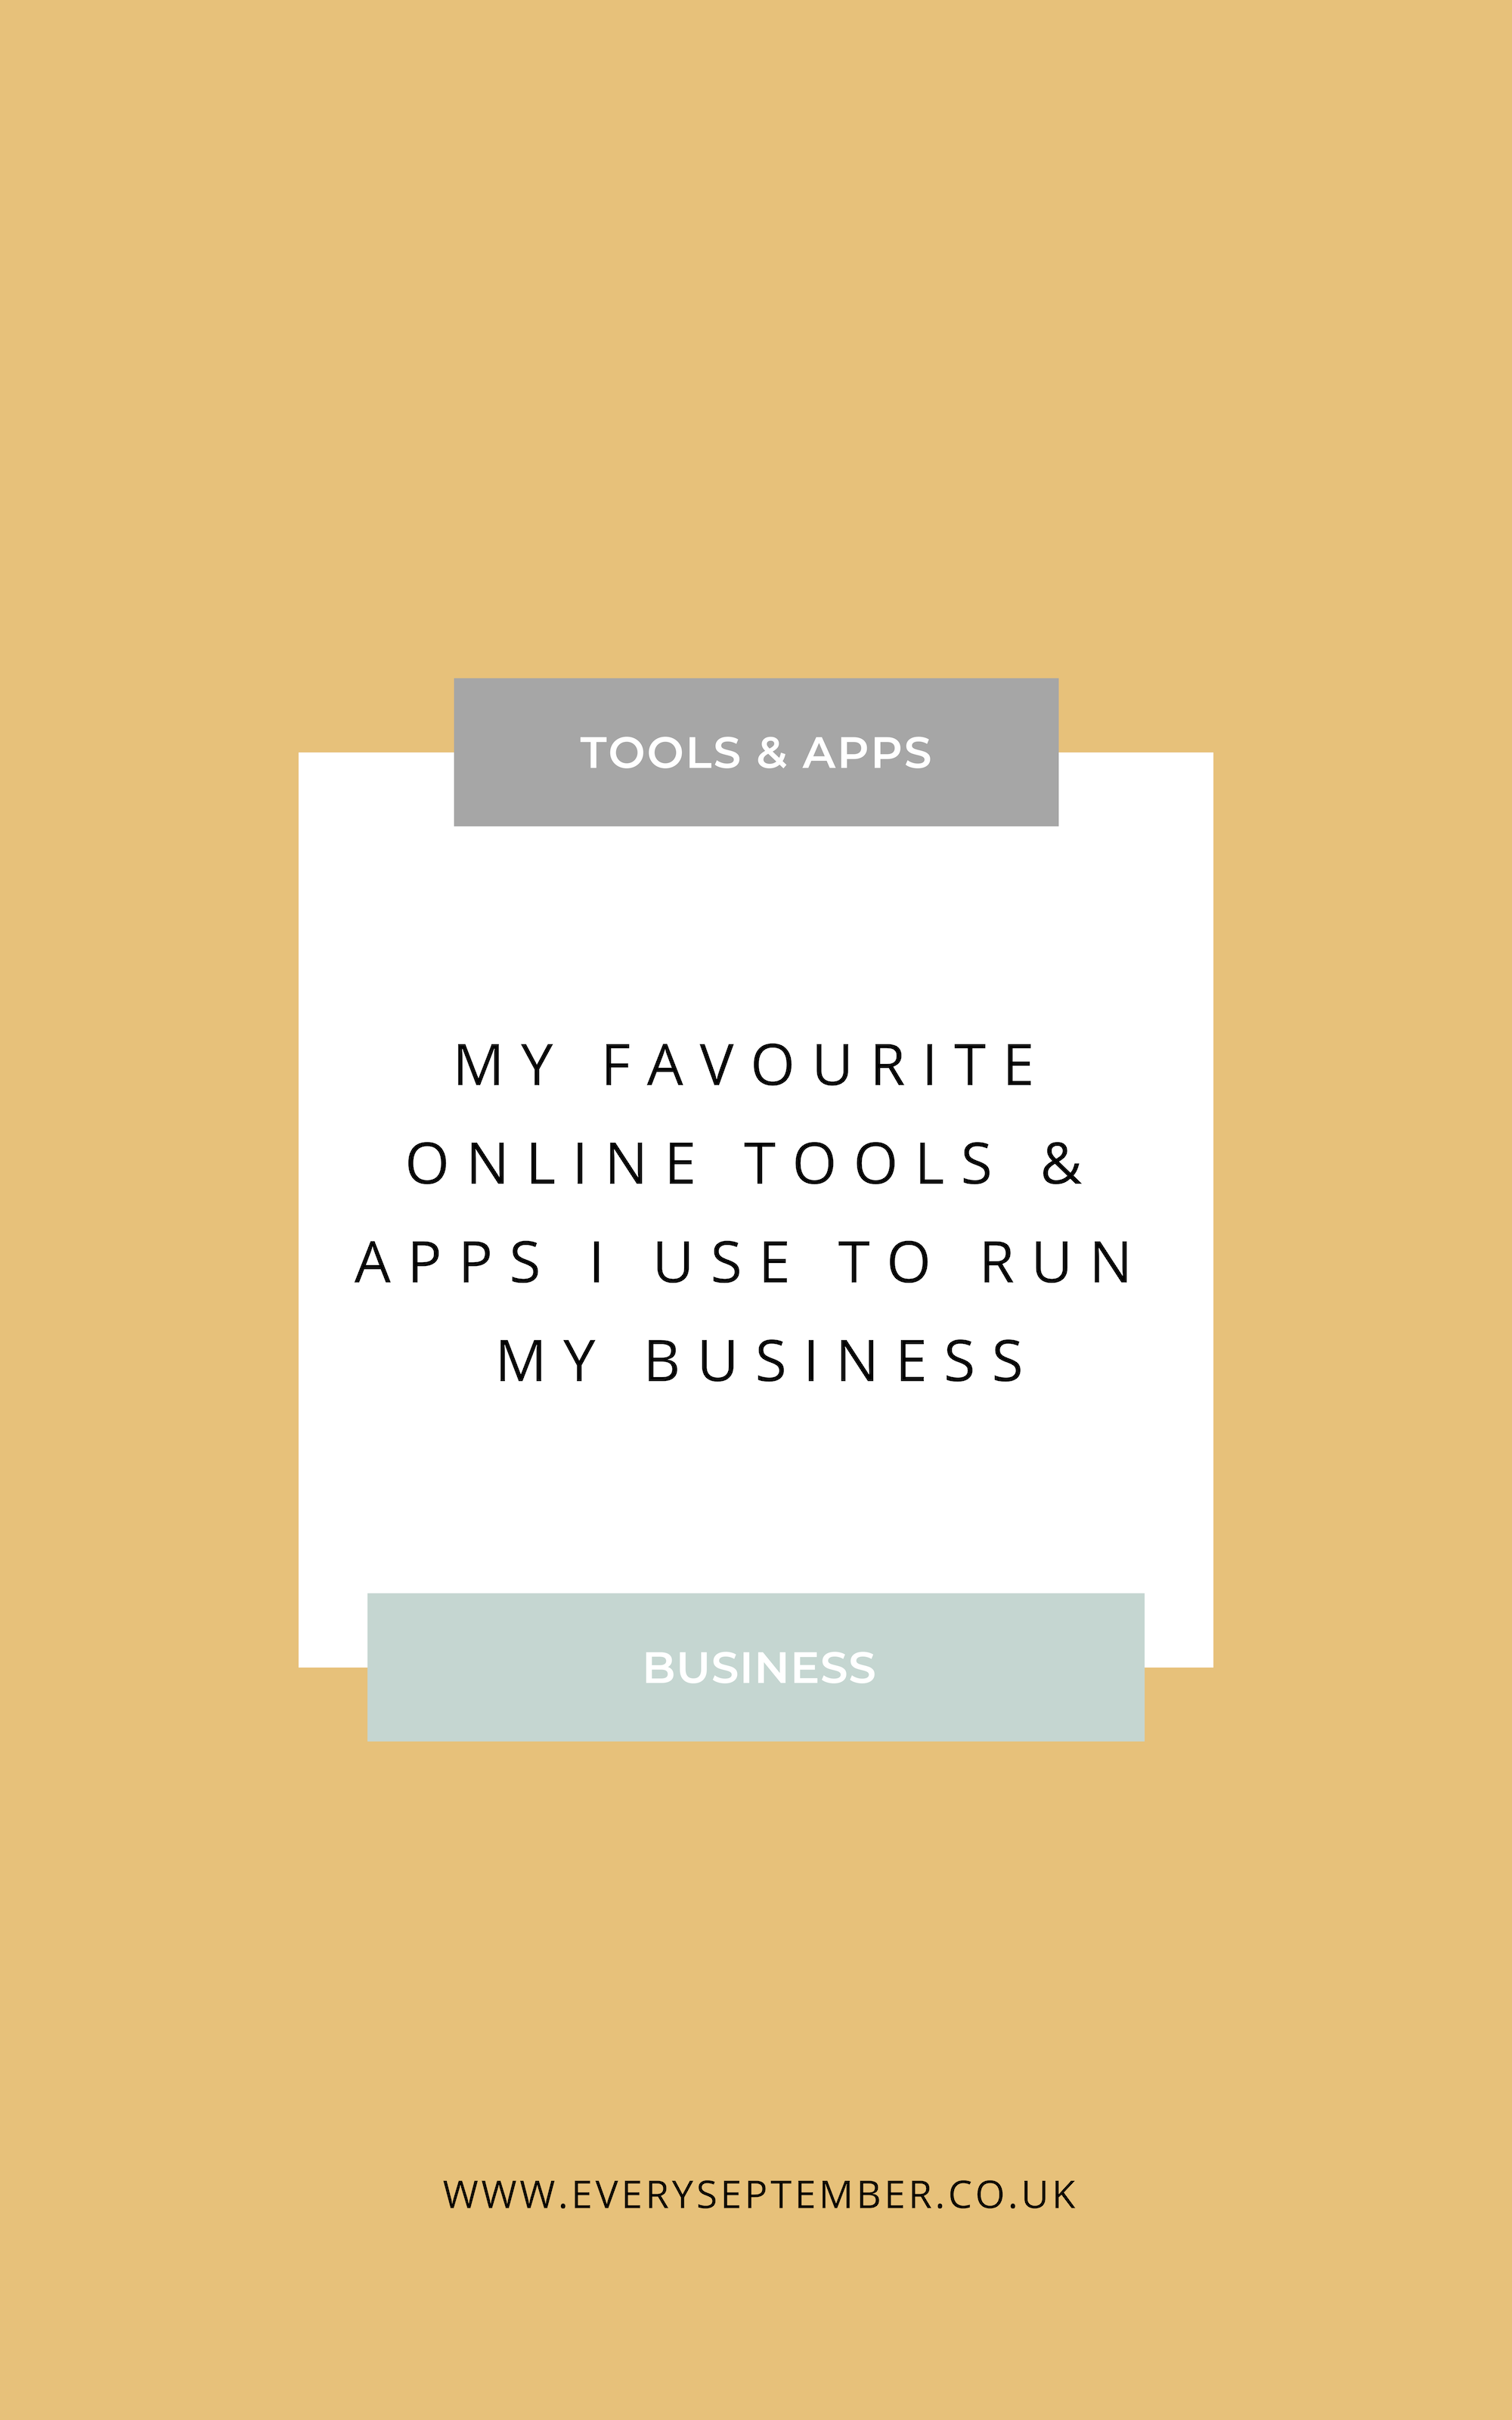 My favourite online business tools and apps to run my business